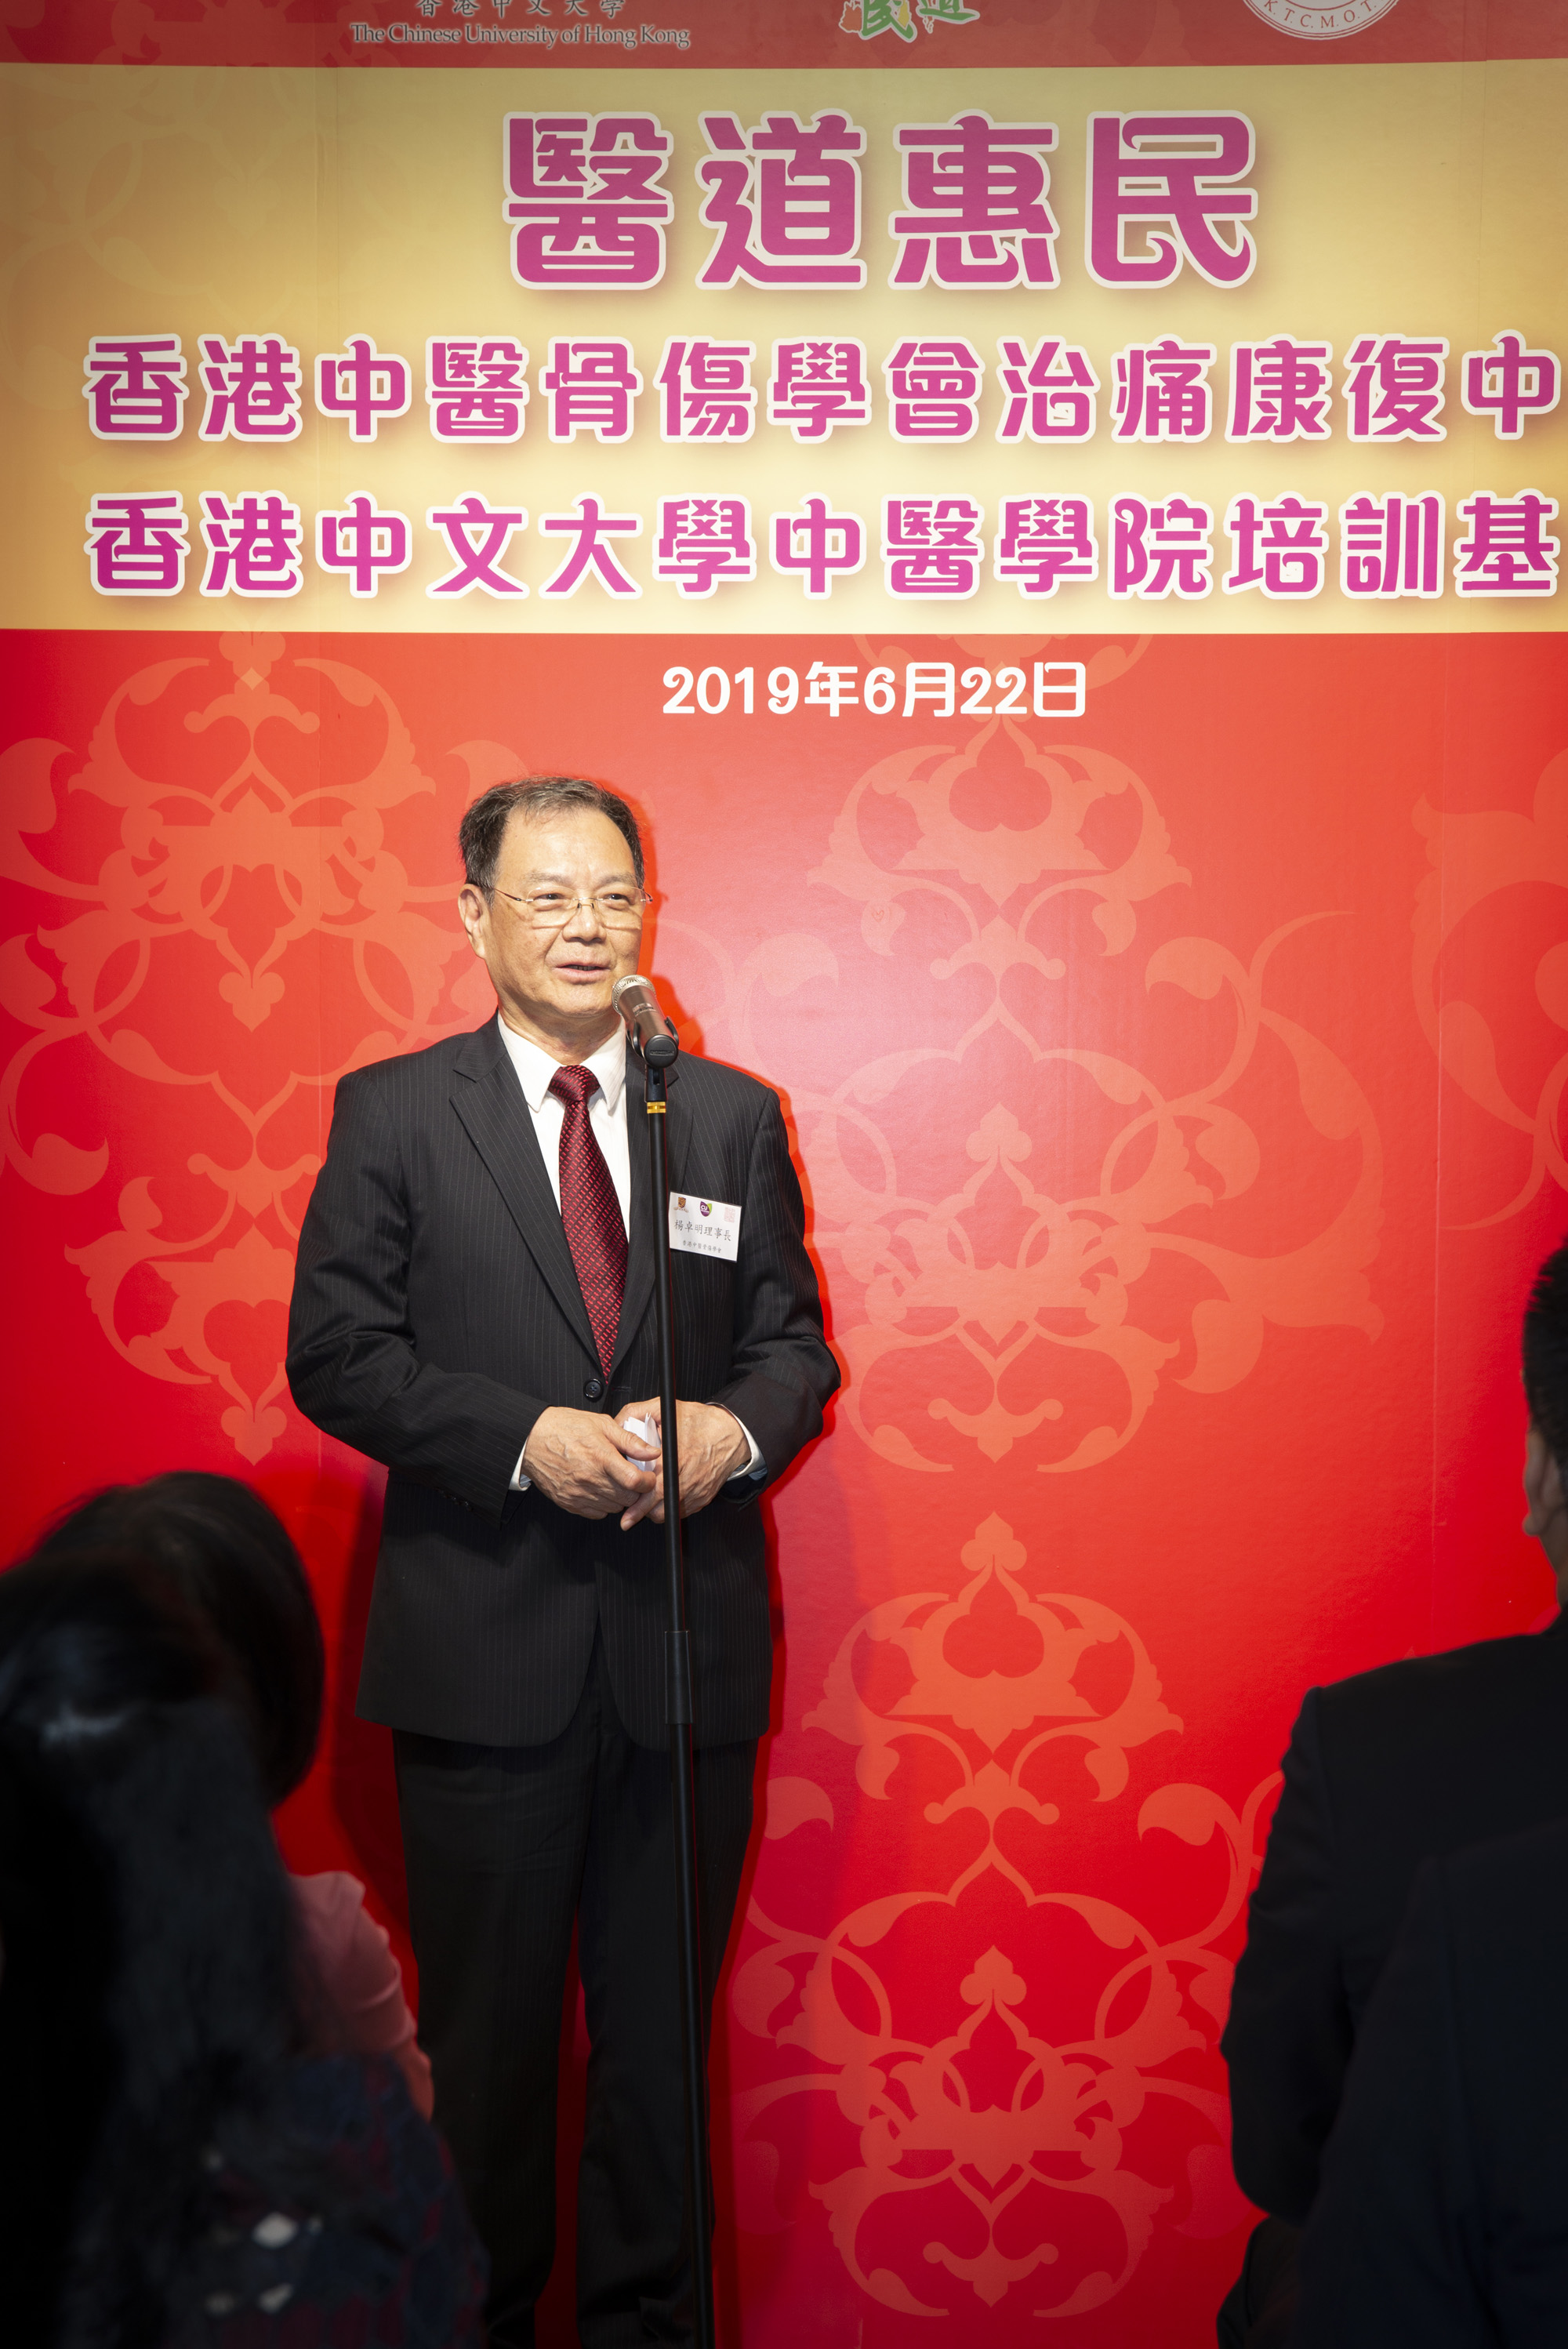 Professor YEUNG Cheuk Ming, Chairman of the Hong Kong T.C.M. Orthopaedic & Traumatic Association, points out that the tripartite collaboration is an innovative mode of cooperation among the Chinese medicine practitioners in Hong Kong. It is an integration of medicine, education and charity to provide excellent Chinese medicine orthopaedics services to HK citizens.